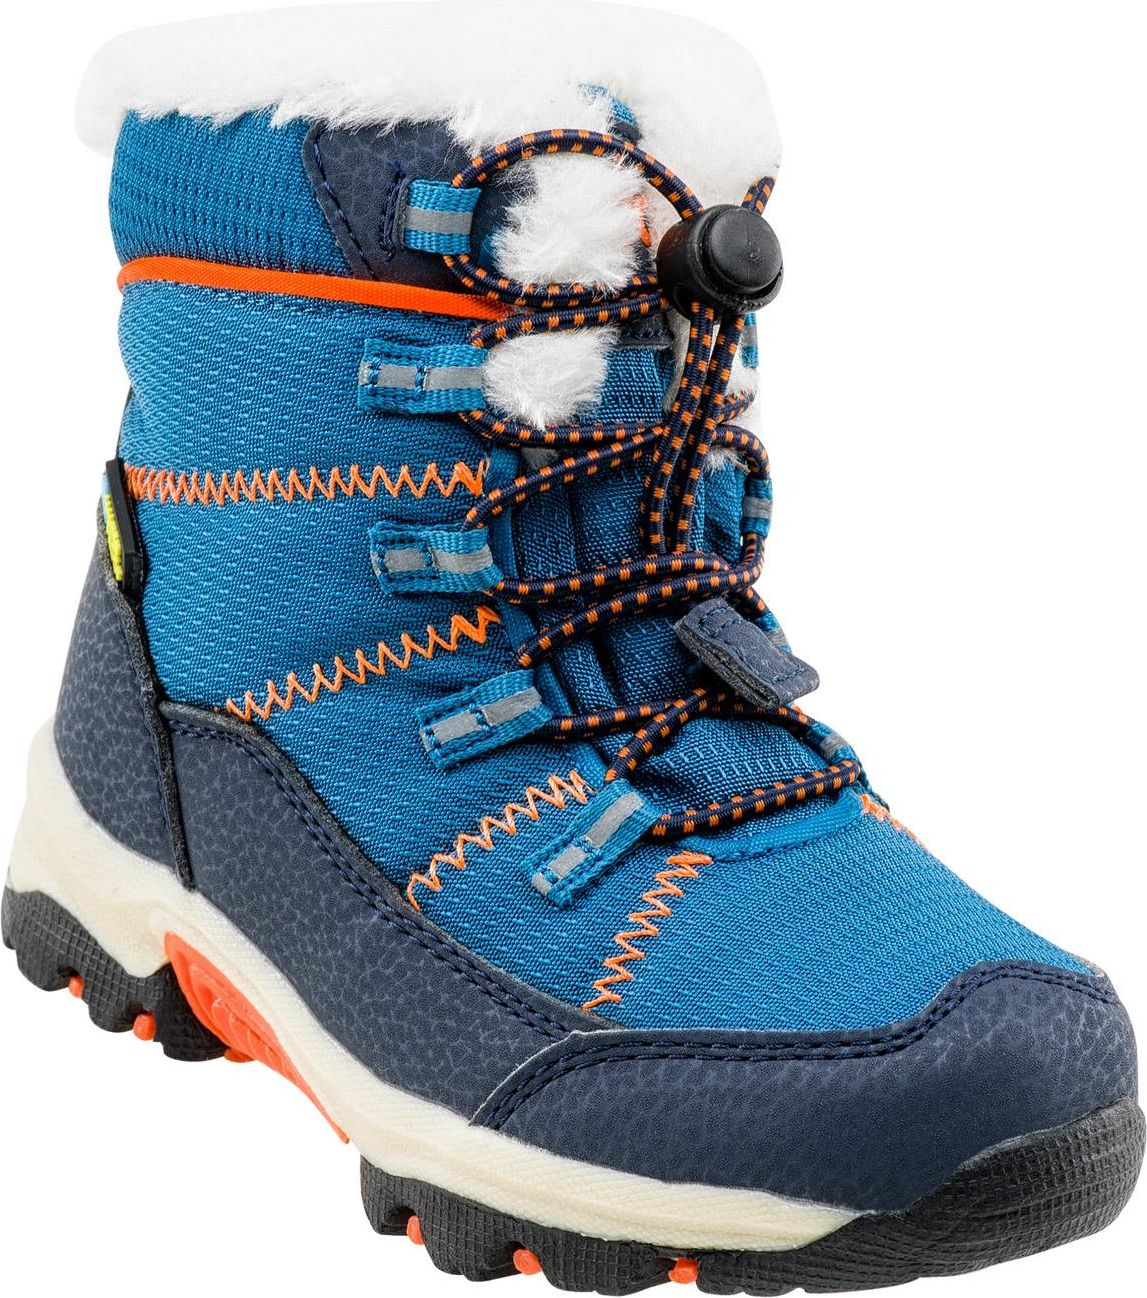 BEJO Buty dzieciece Amir Kids Peacock Blue/navy/orange r. 27 5264523